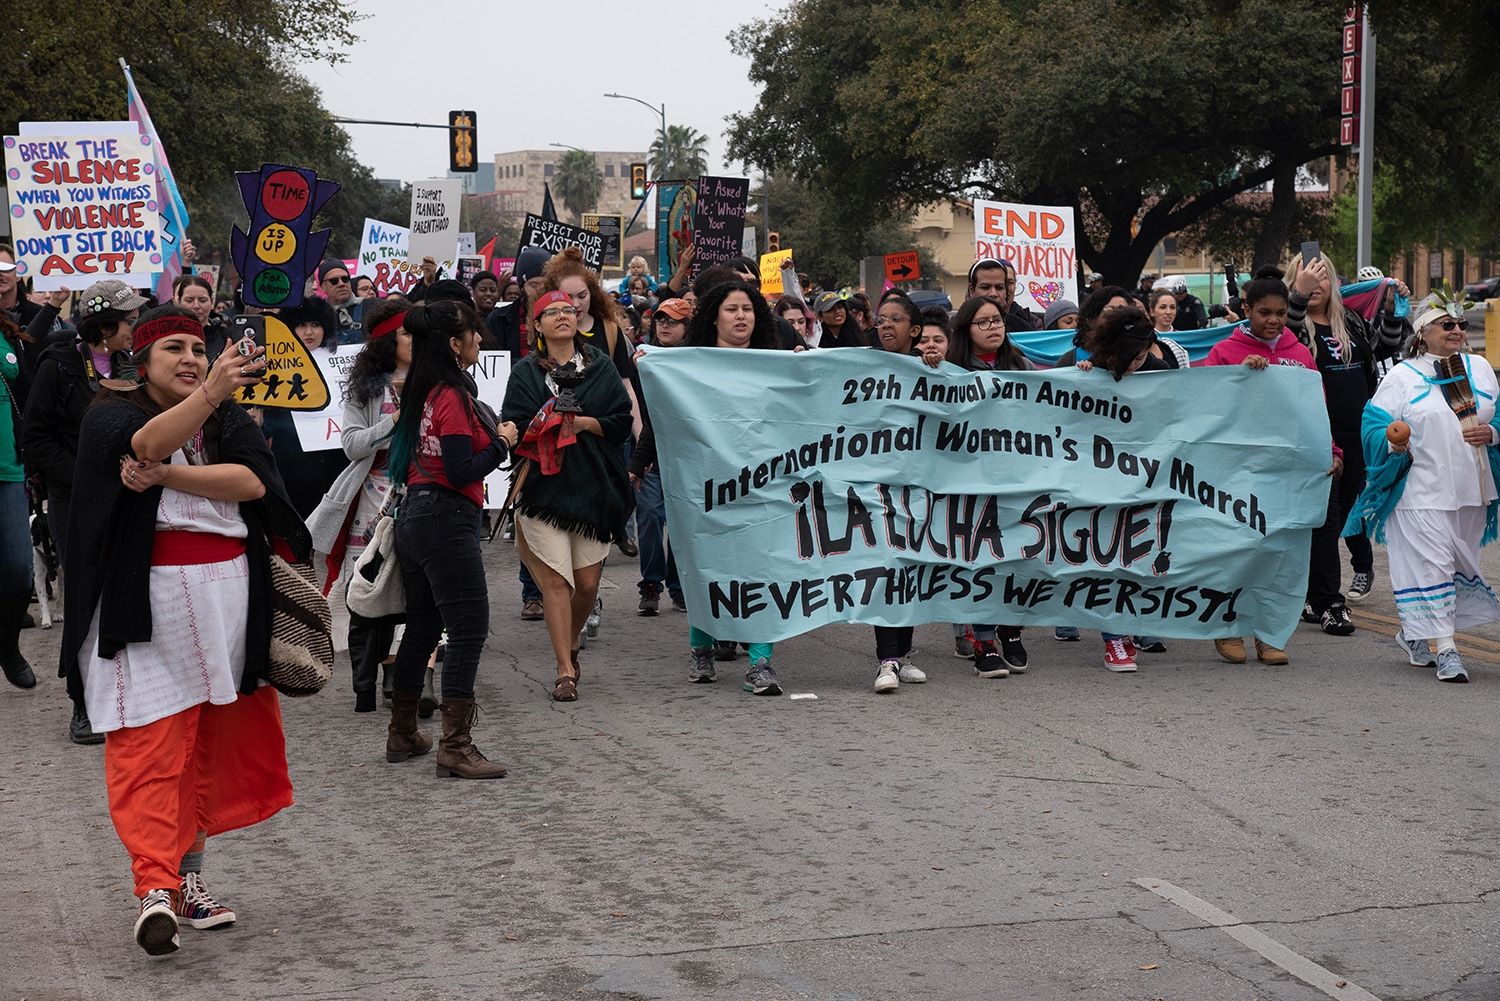 Participants during the 29th annual San Antonio International Women's Day March in downtown San Antonio on Saturday, March 2. <b><em>Photo by V. Finster | Heron</em></b>